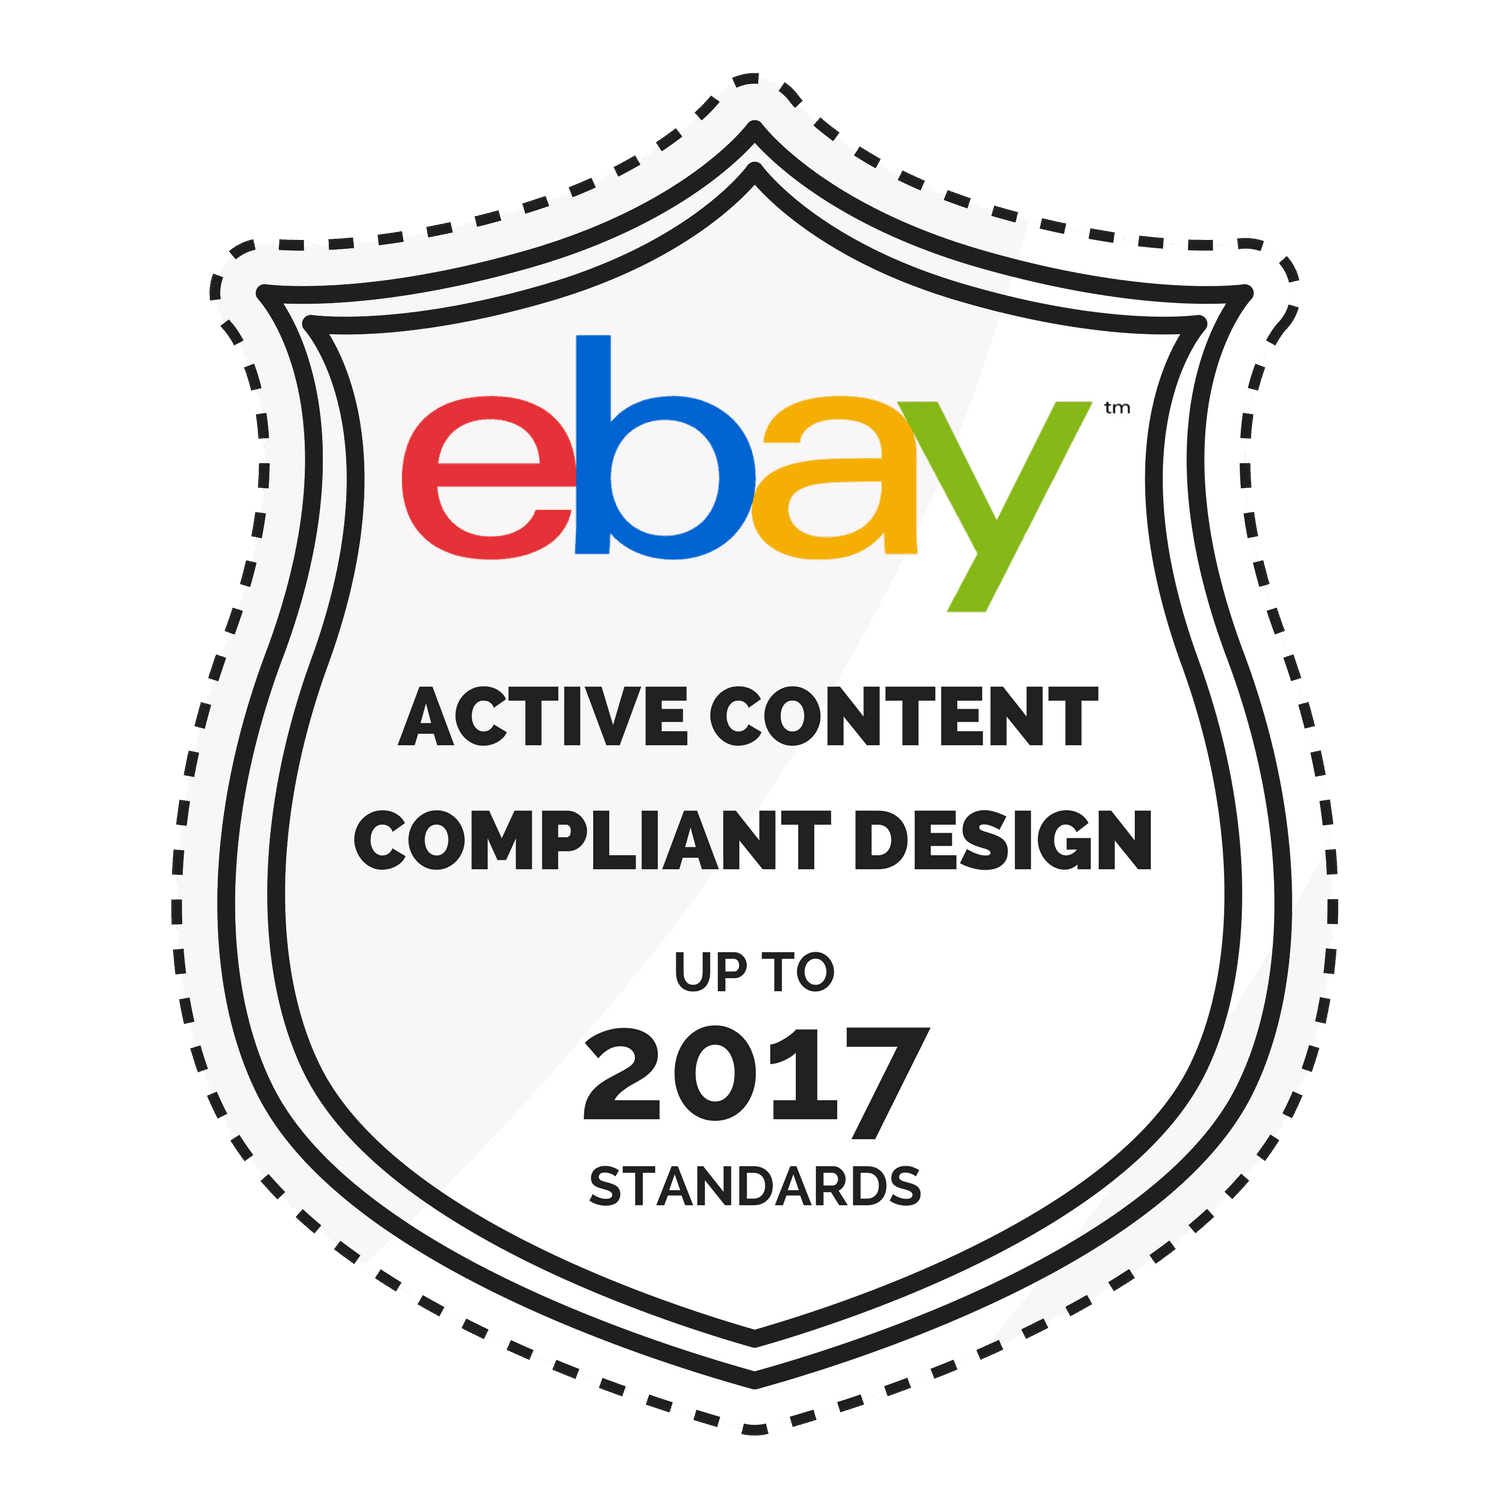 EBAY DESIGN ACTIVE CONTENT COMPLIANT